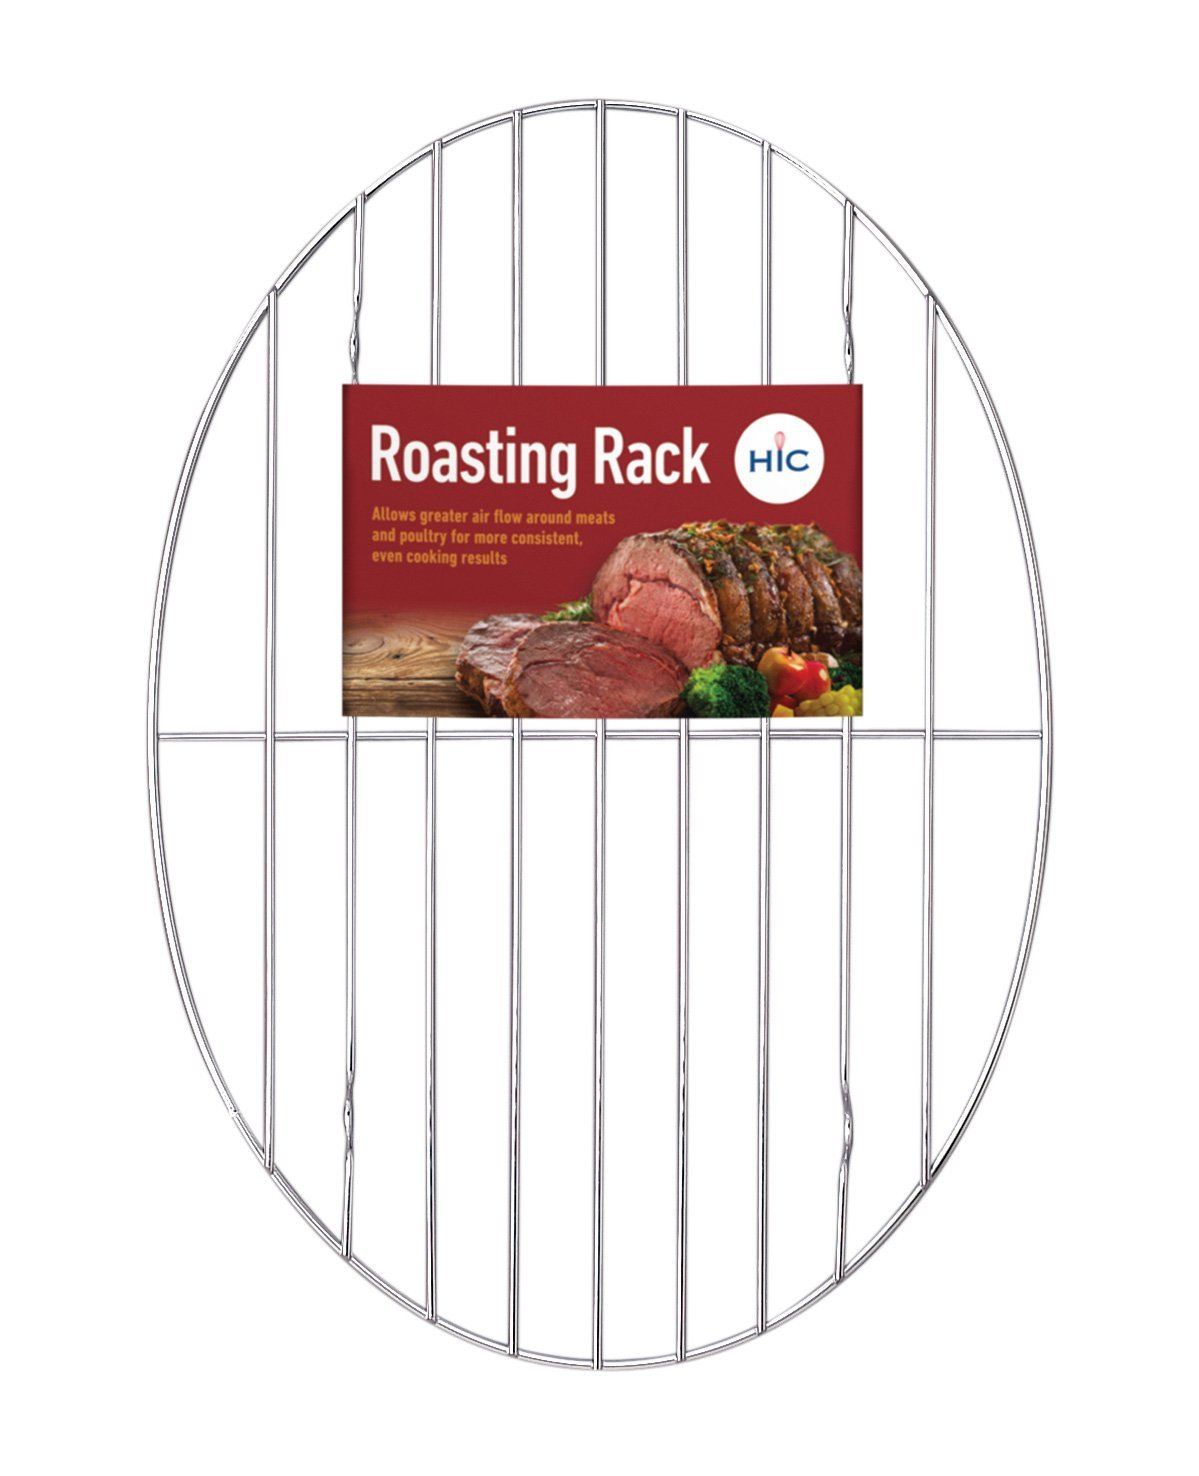 HIC Broiler Rack, 12-Inches x 7.5-Inches, HIC's Roasting Rack for baking, roasting and broiling beef, poultry, pork, game, and fish, oven... by